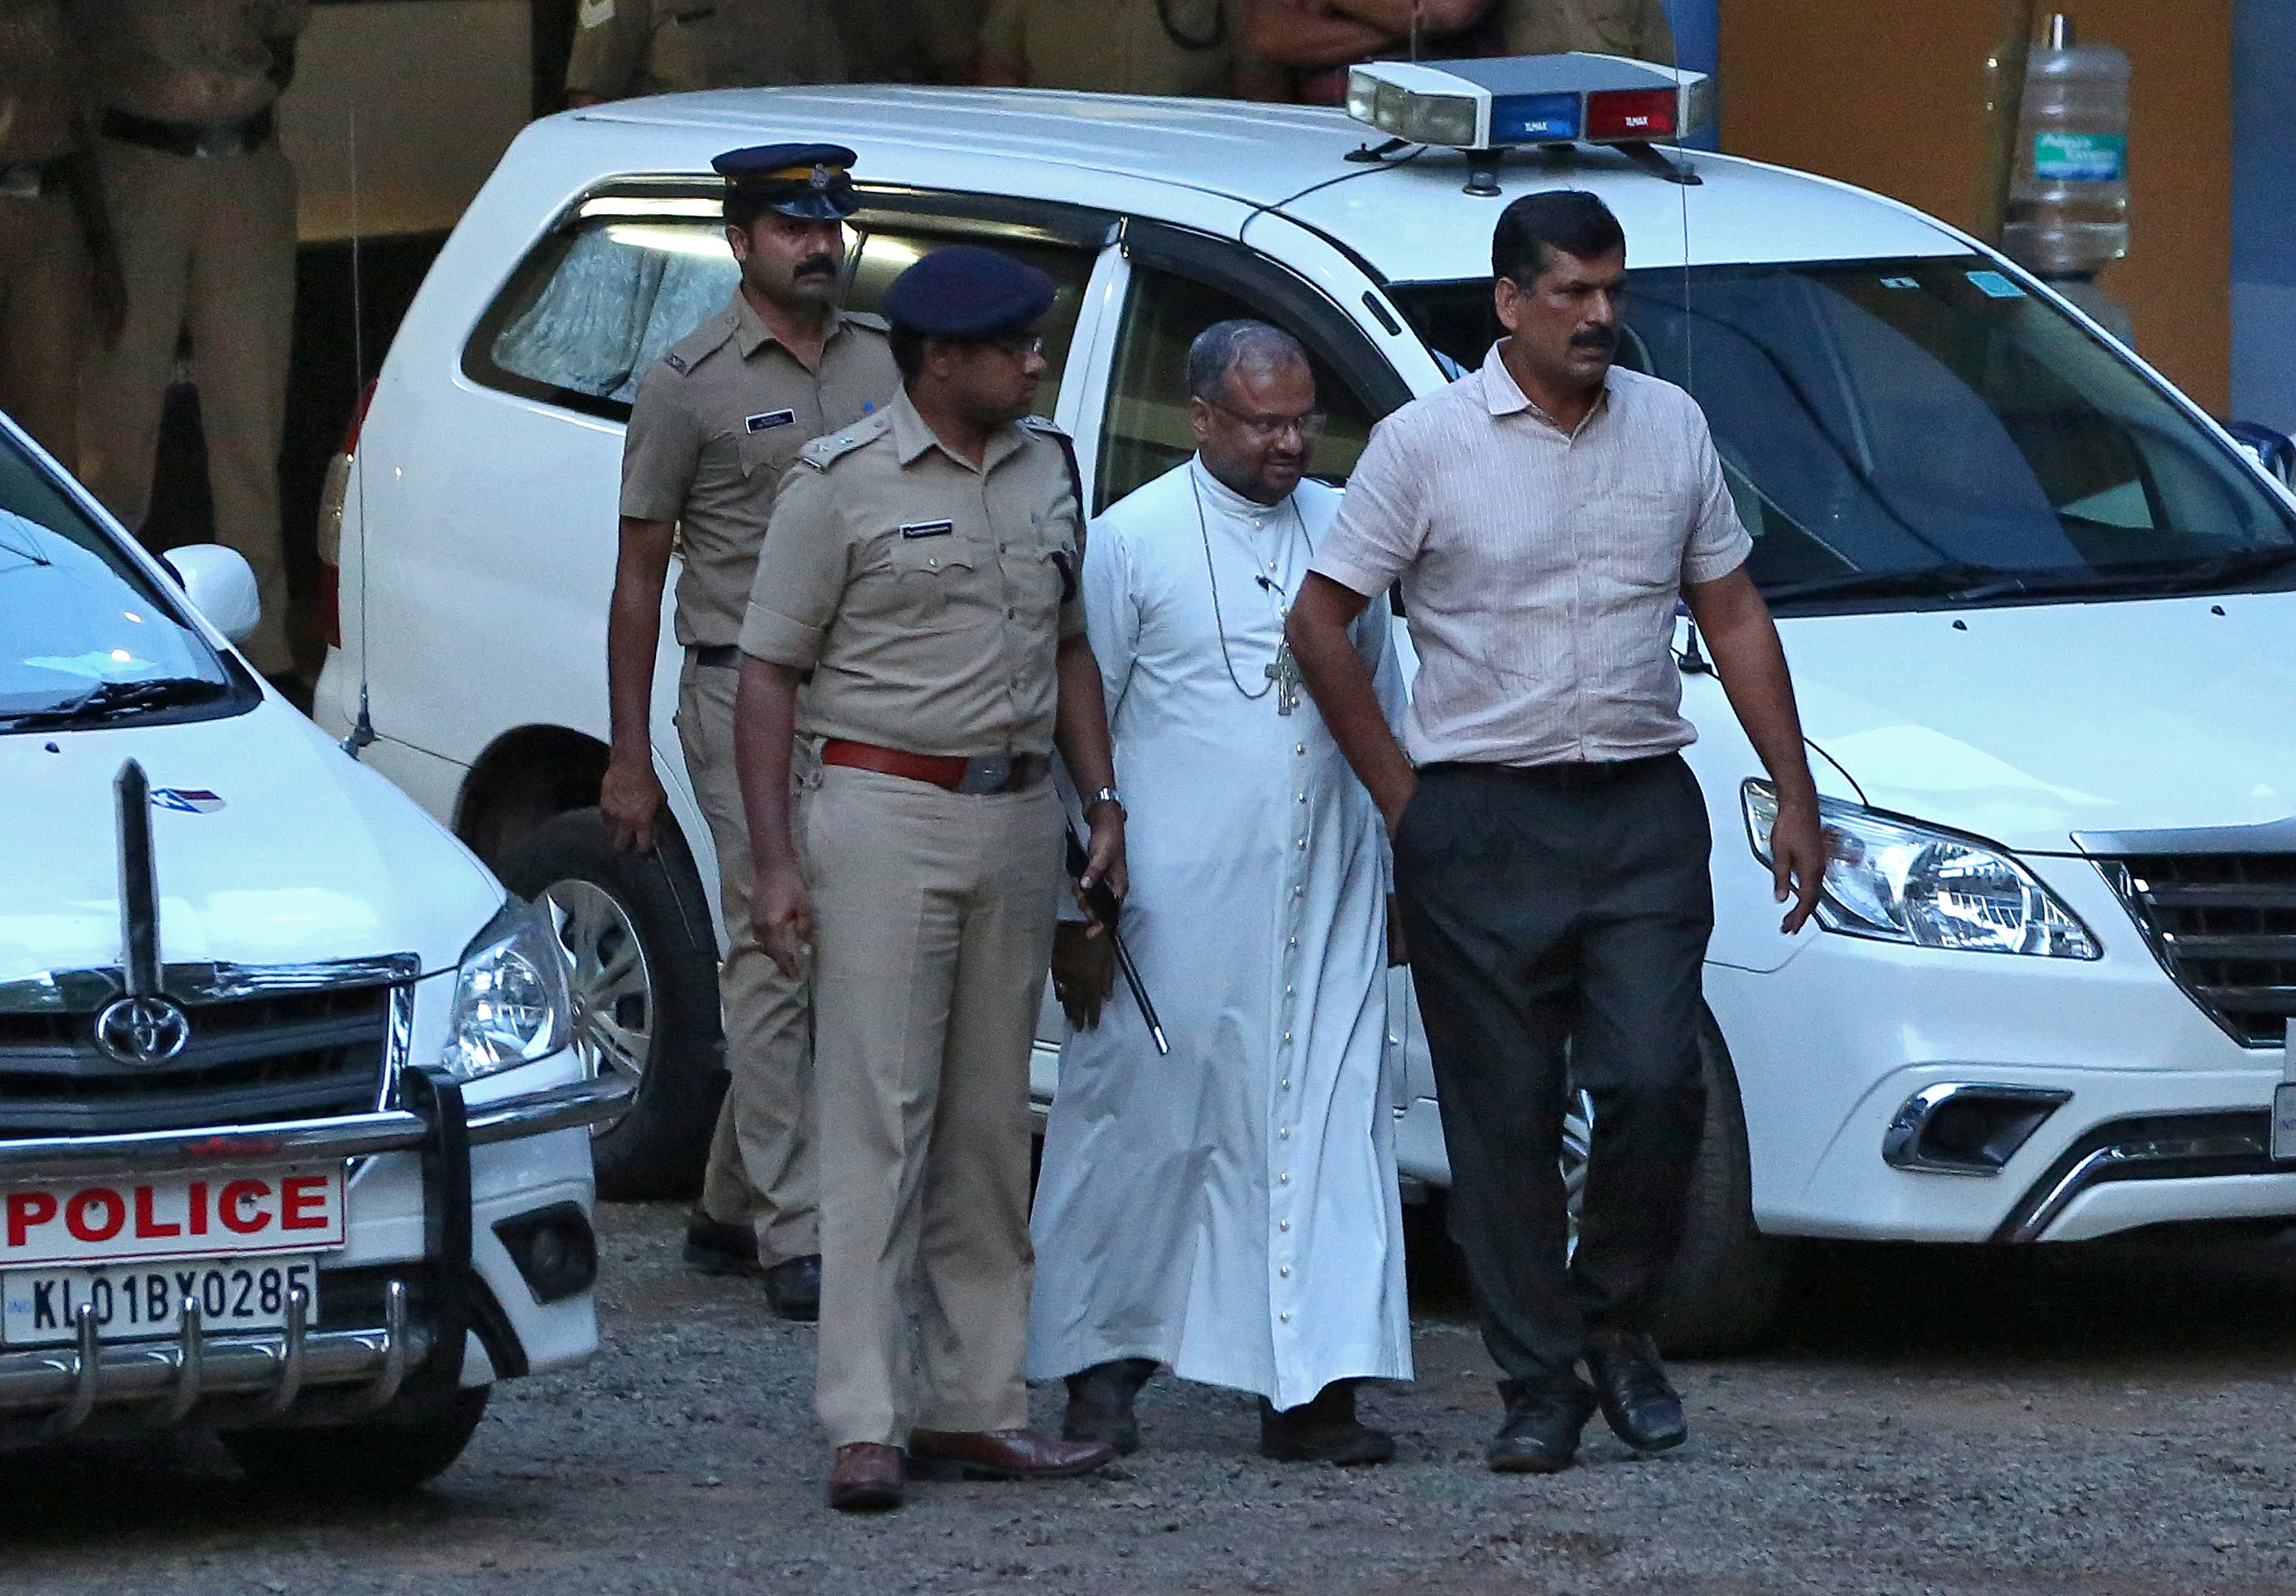 Bishop Franco Mulakkal was arrested last September and is currently out on bail. Photo credit: Reuters